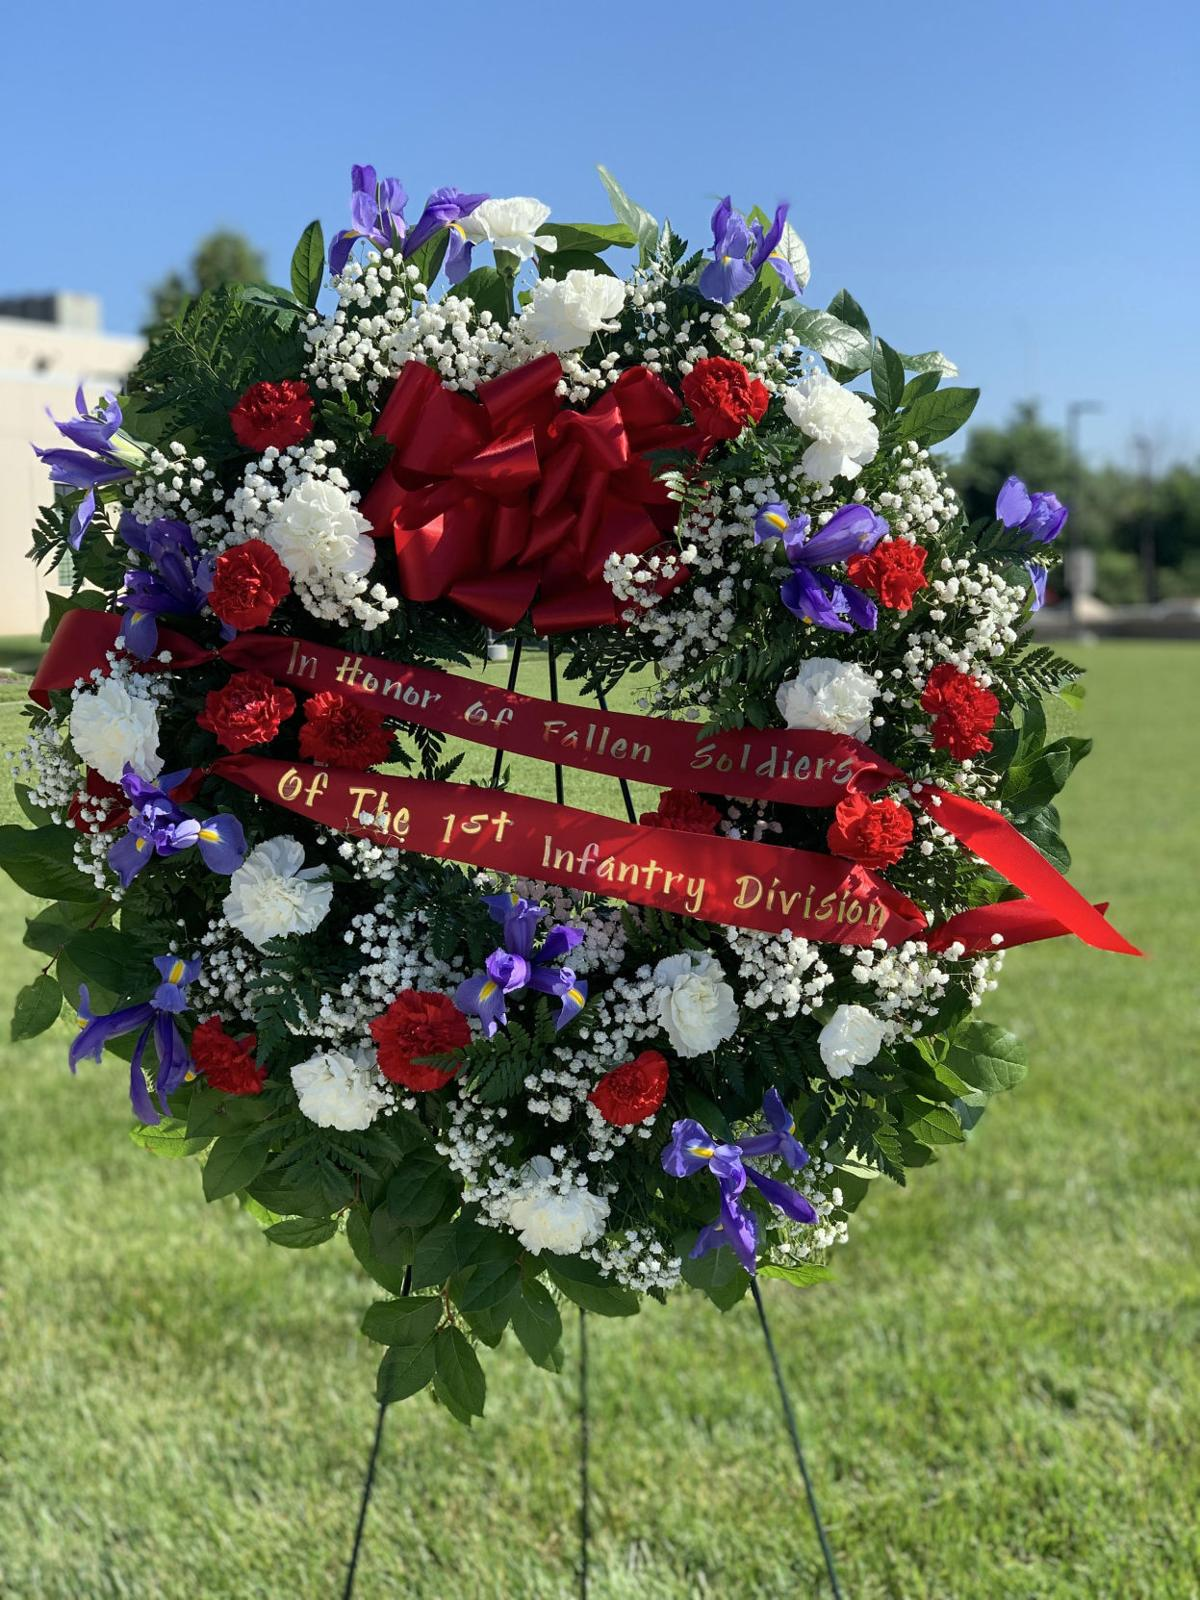 Wreath-laying ceremony honors soldiers' sacrifices